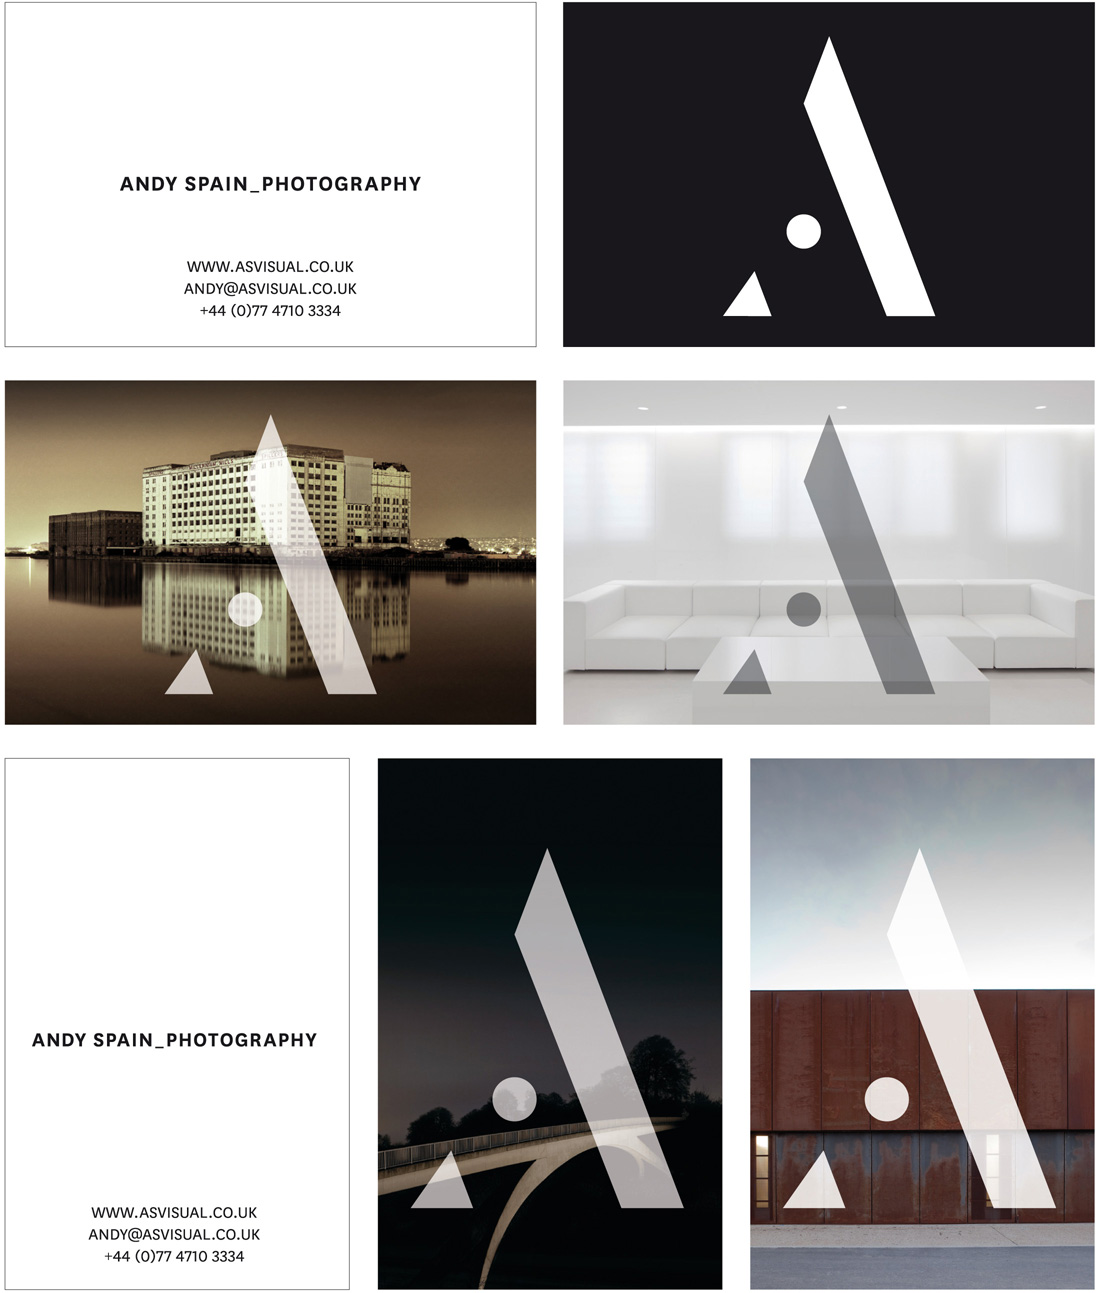 New identity design for architectural photographer andy spain 2013 07 31 pressreleasenewidentitydesignforarchitecturalphotographer2smallg selection of business cards reheart Image collections